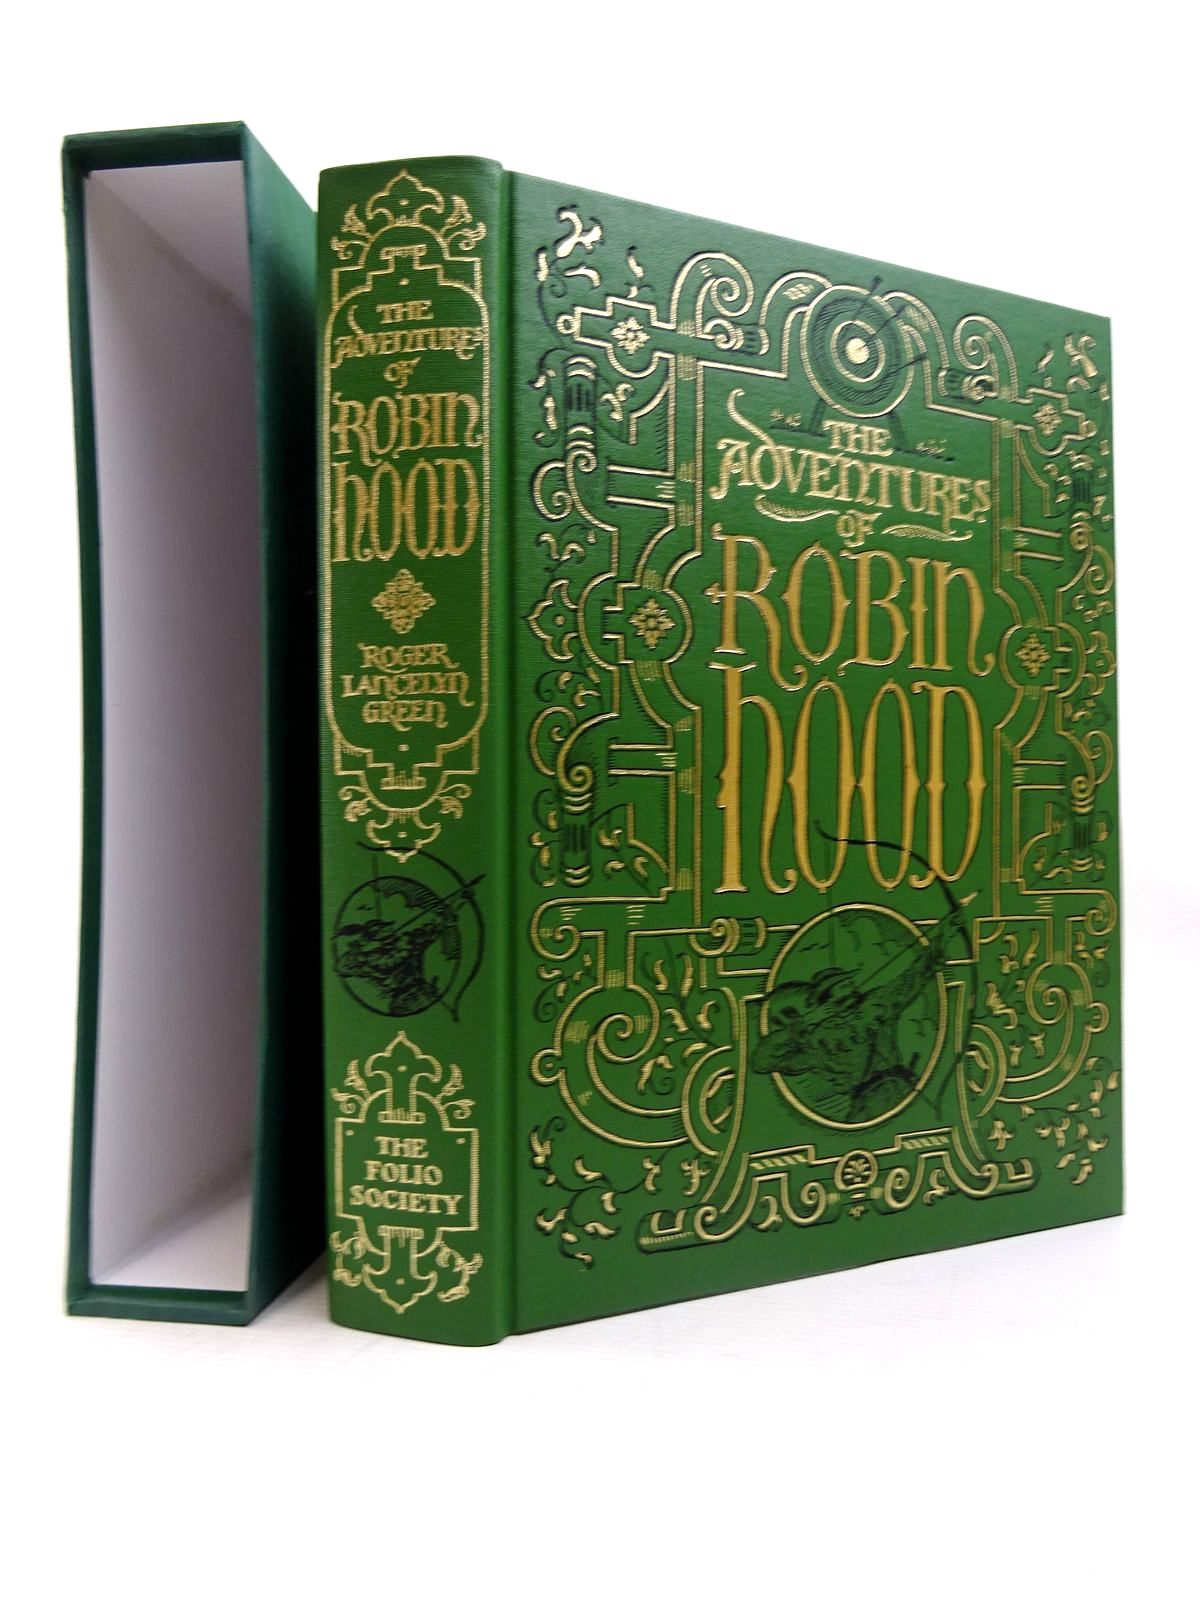 Photo of THE ADVENTURES OF ROBIN HOOD written by Green, Roger Lancelyn illustrated by Holder, John published by Folio Society (STOCK CODE: 1816324)  for sale by Stella & Rose's Books